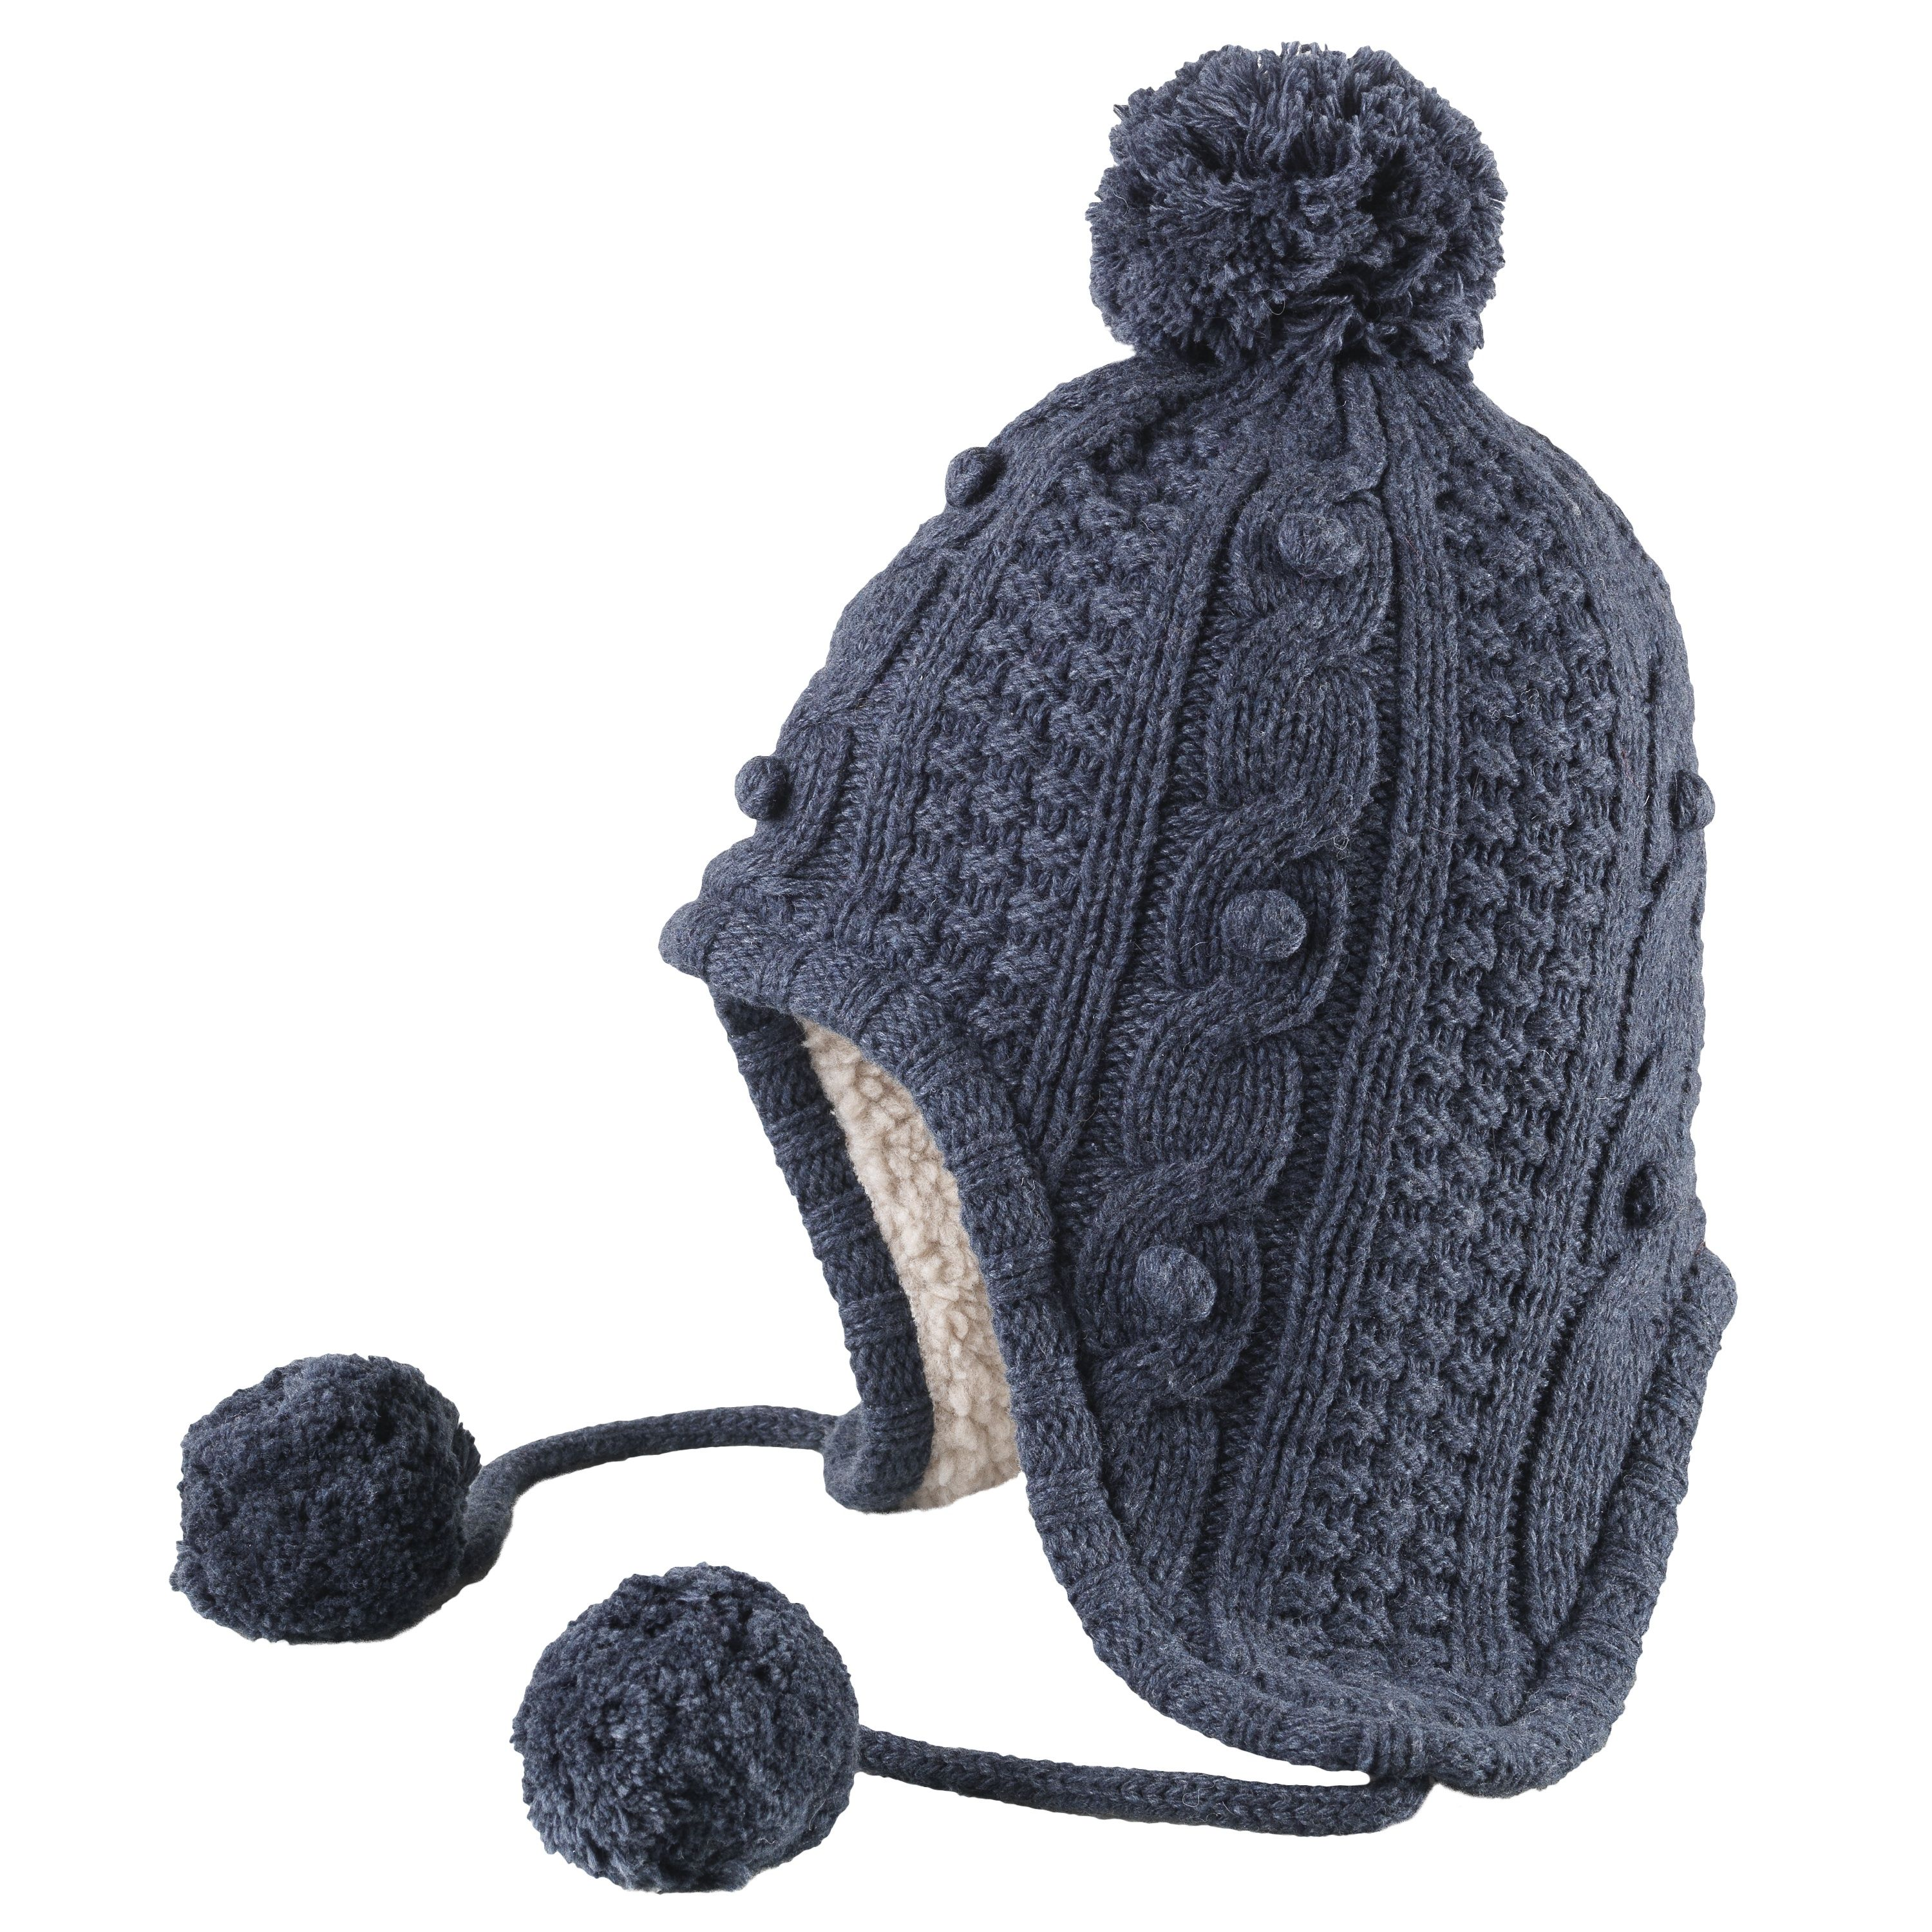 Timberland Knitted Inca Hat - lined with shearling for warmth  winter   fleece 318e5eb868a